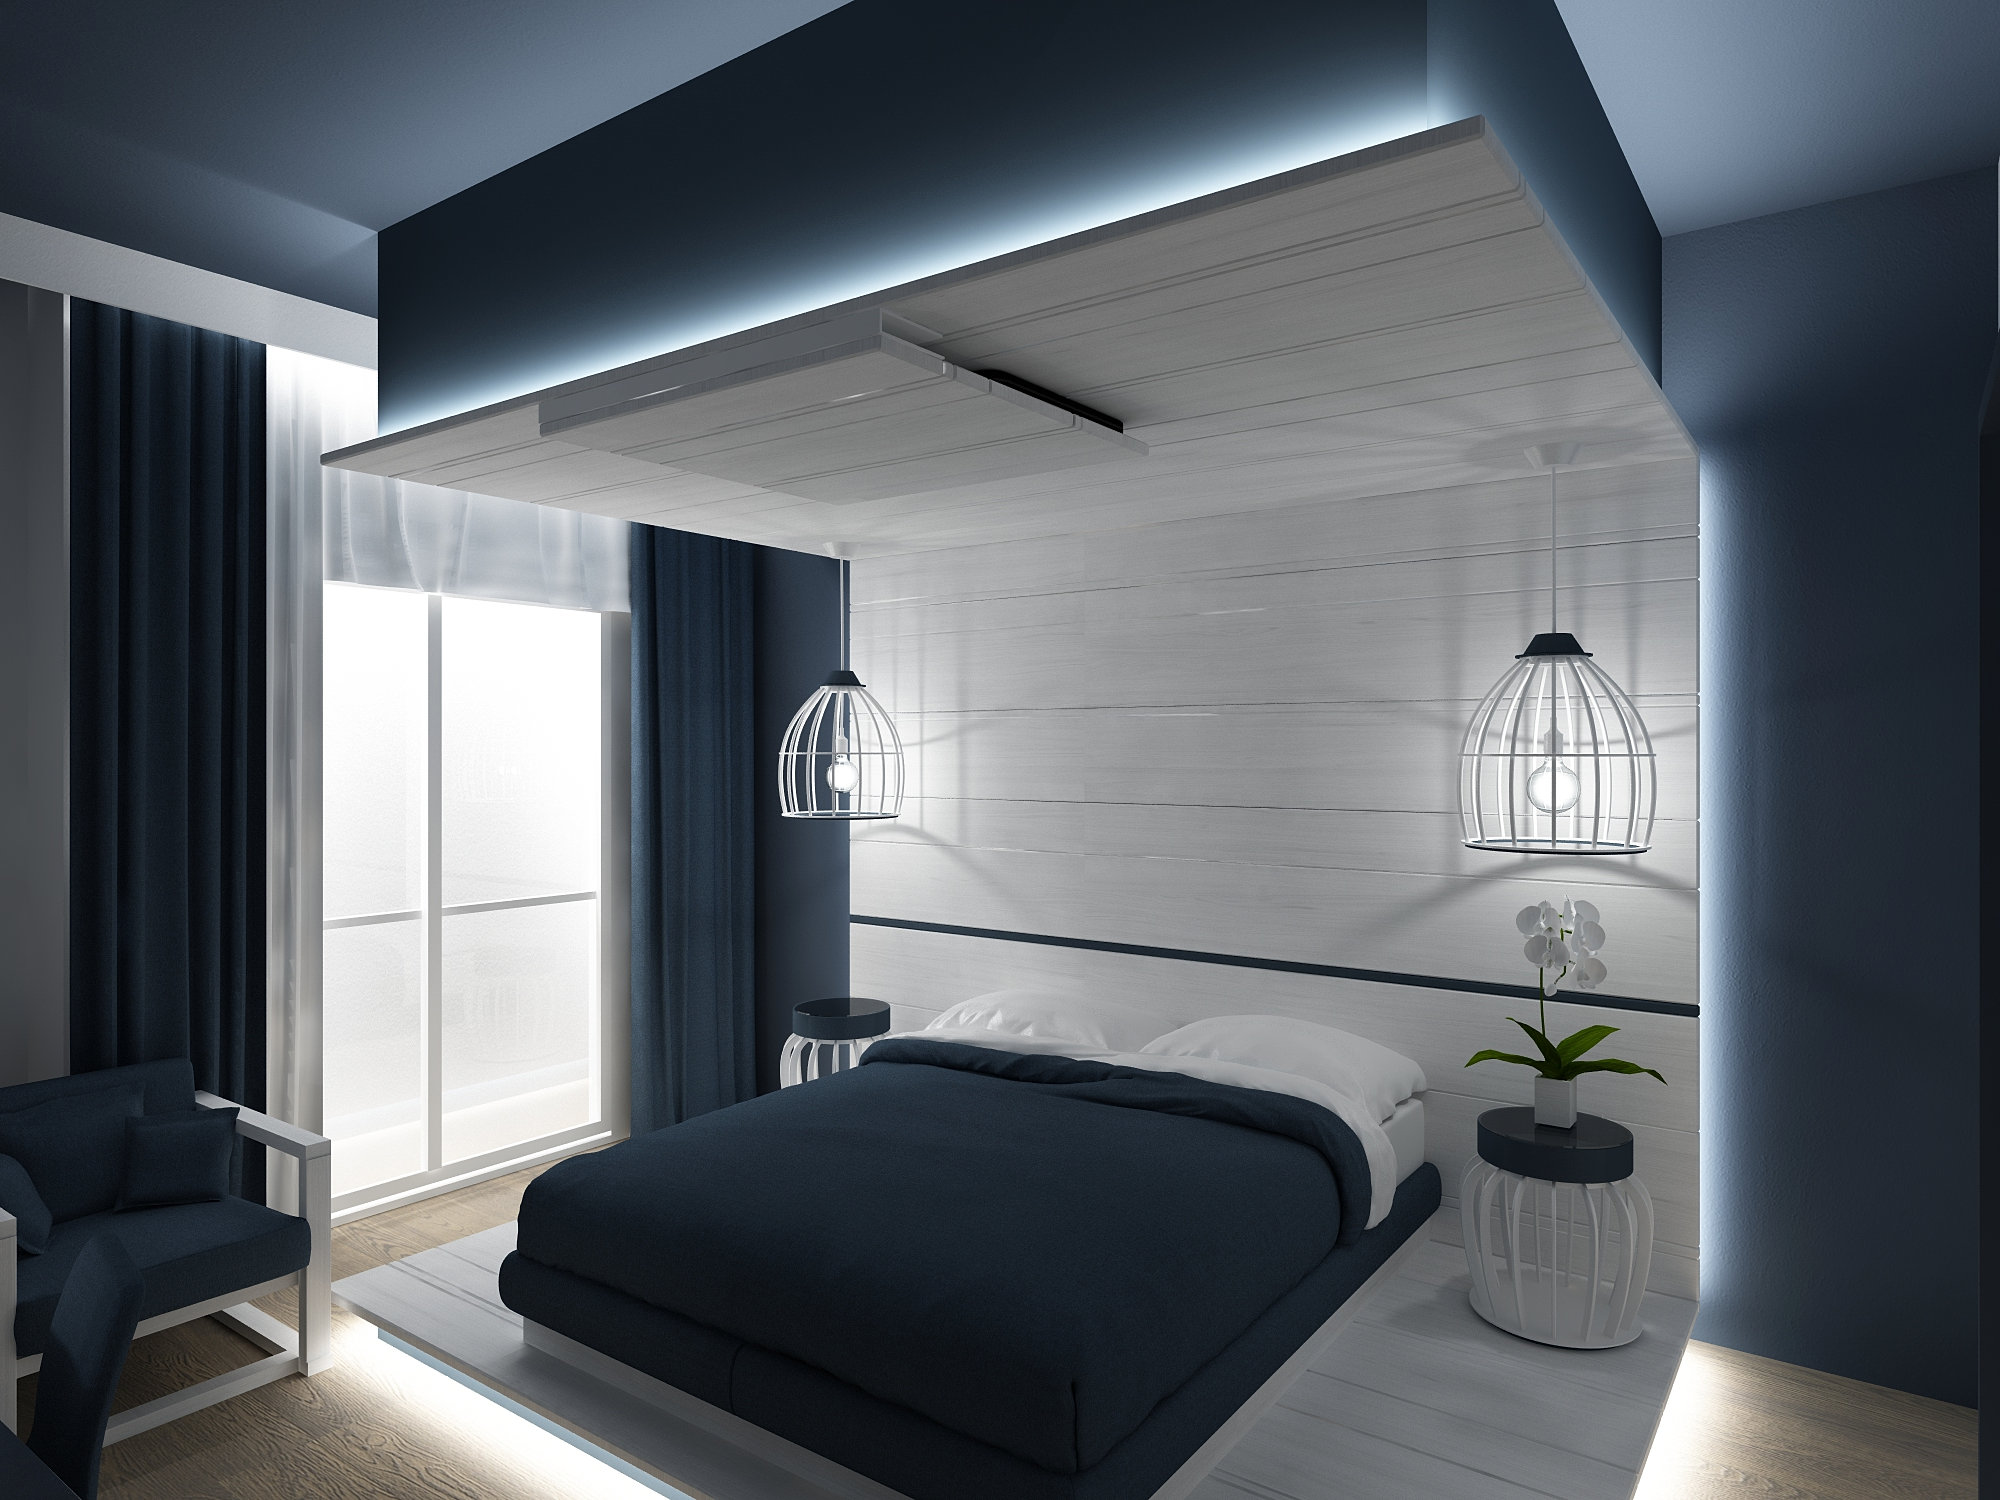 Iarchitects Architecture And Design Studio Hotel Room Design - Bedroom design concepts